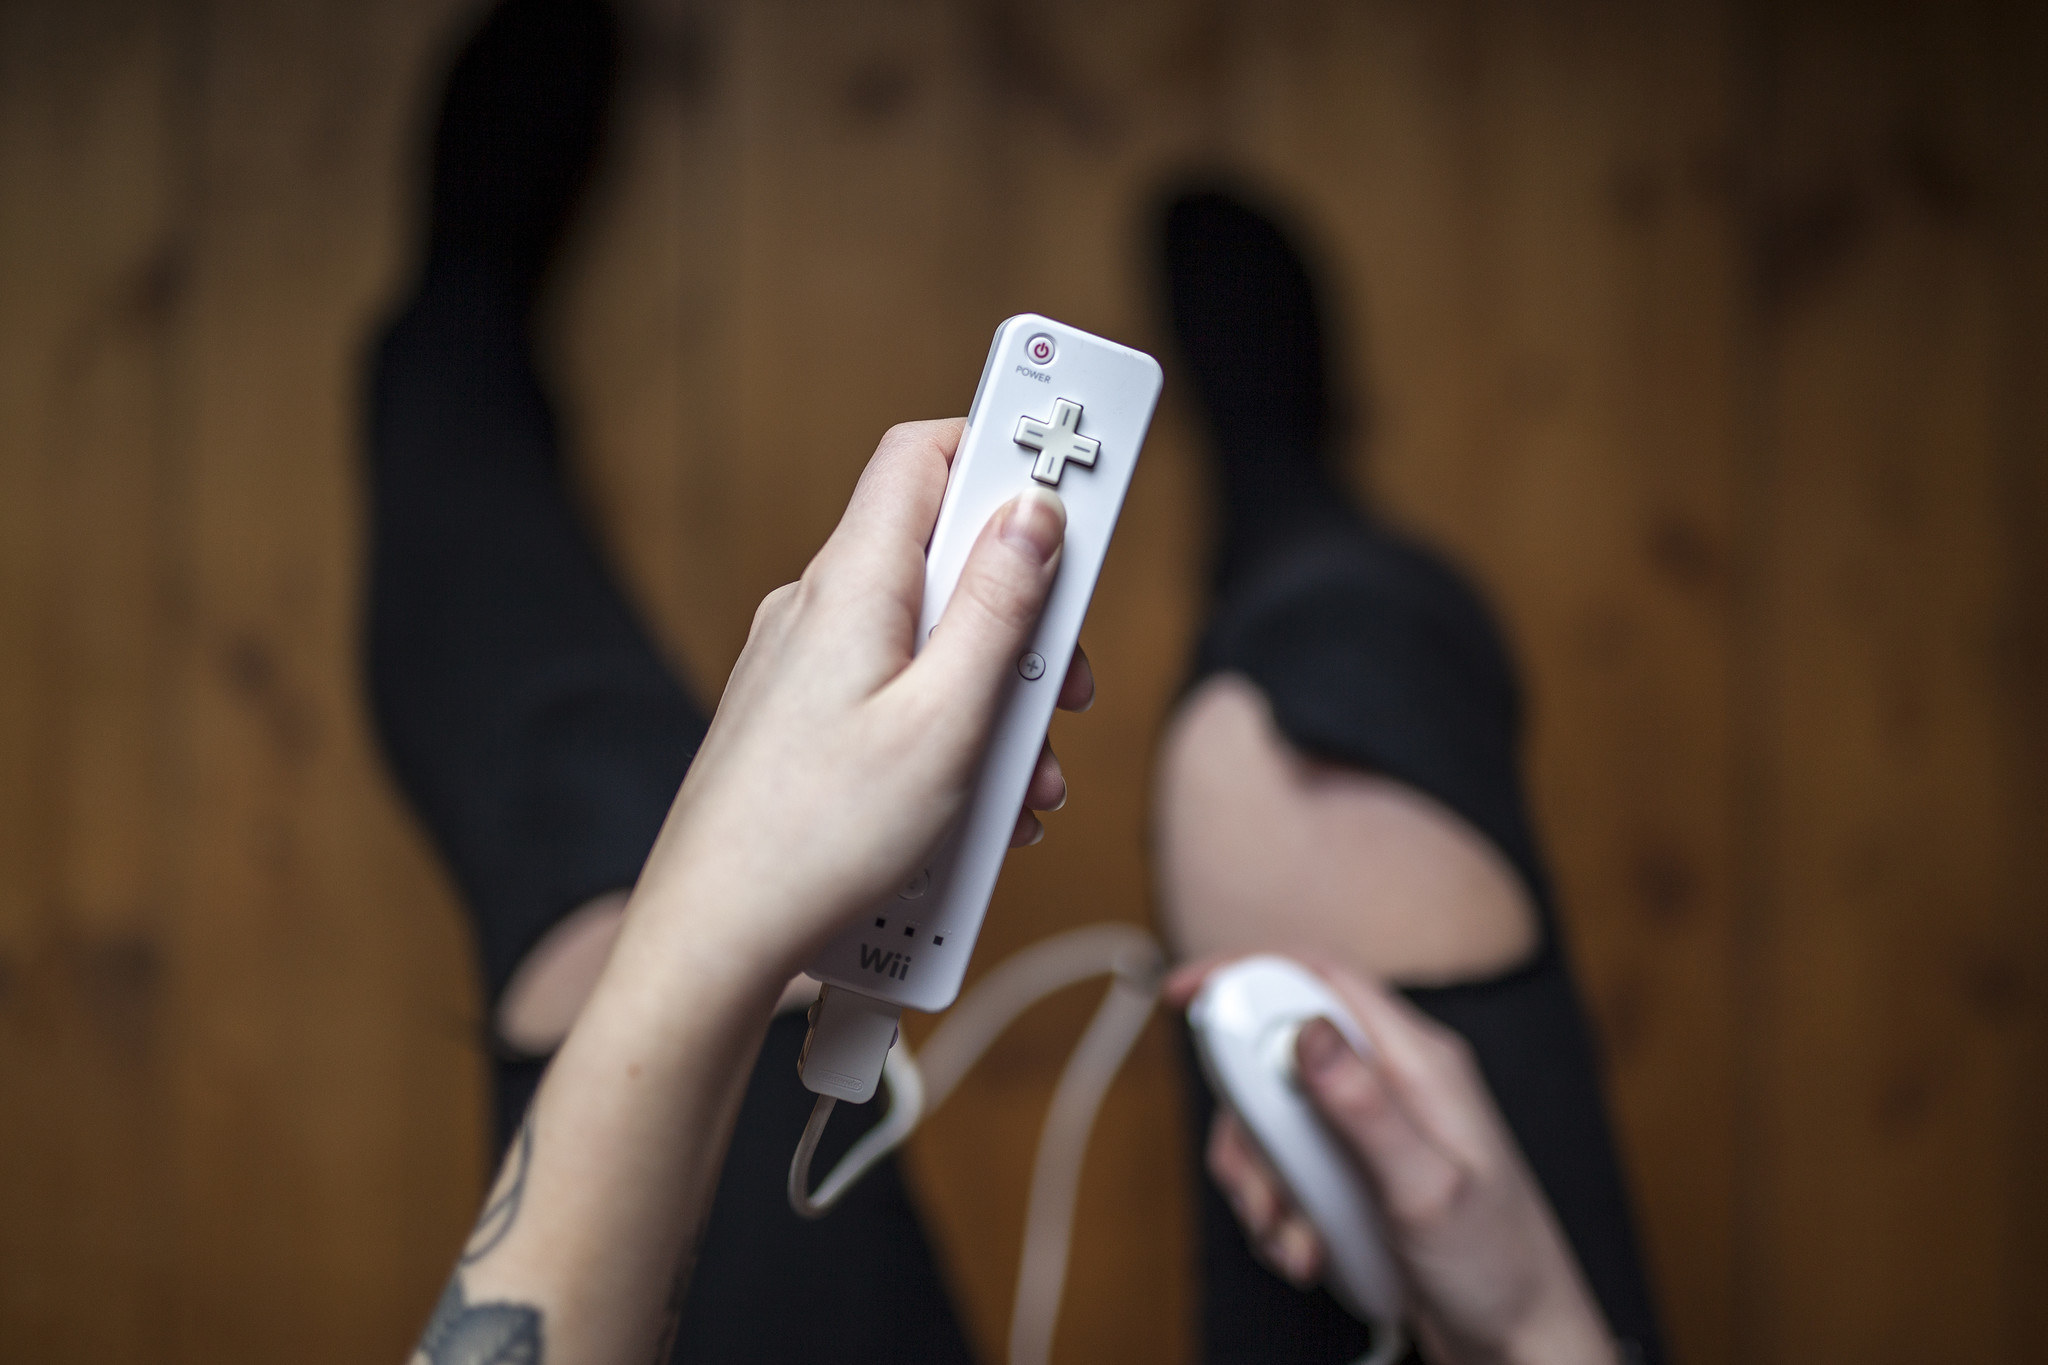 Nintendo to discontinue repair program for Wii video game console